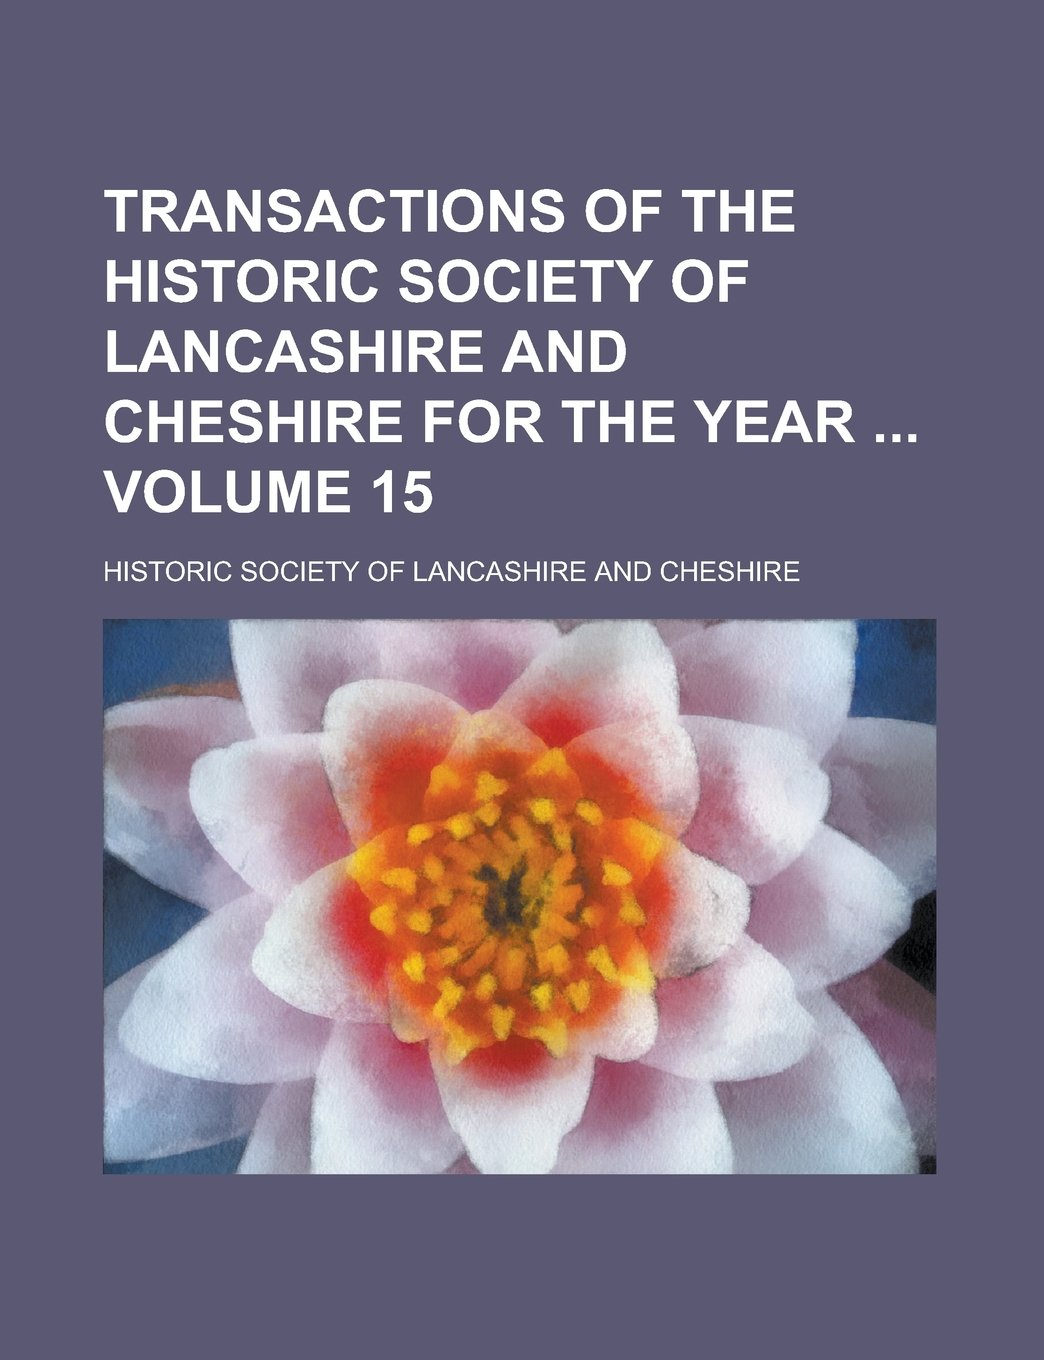 Download Transactions of the Historic Society of Lancashire and Cheshire for the year  Volume 15 ebook